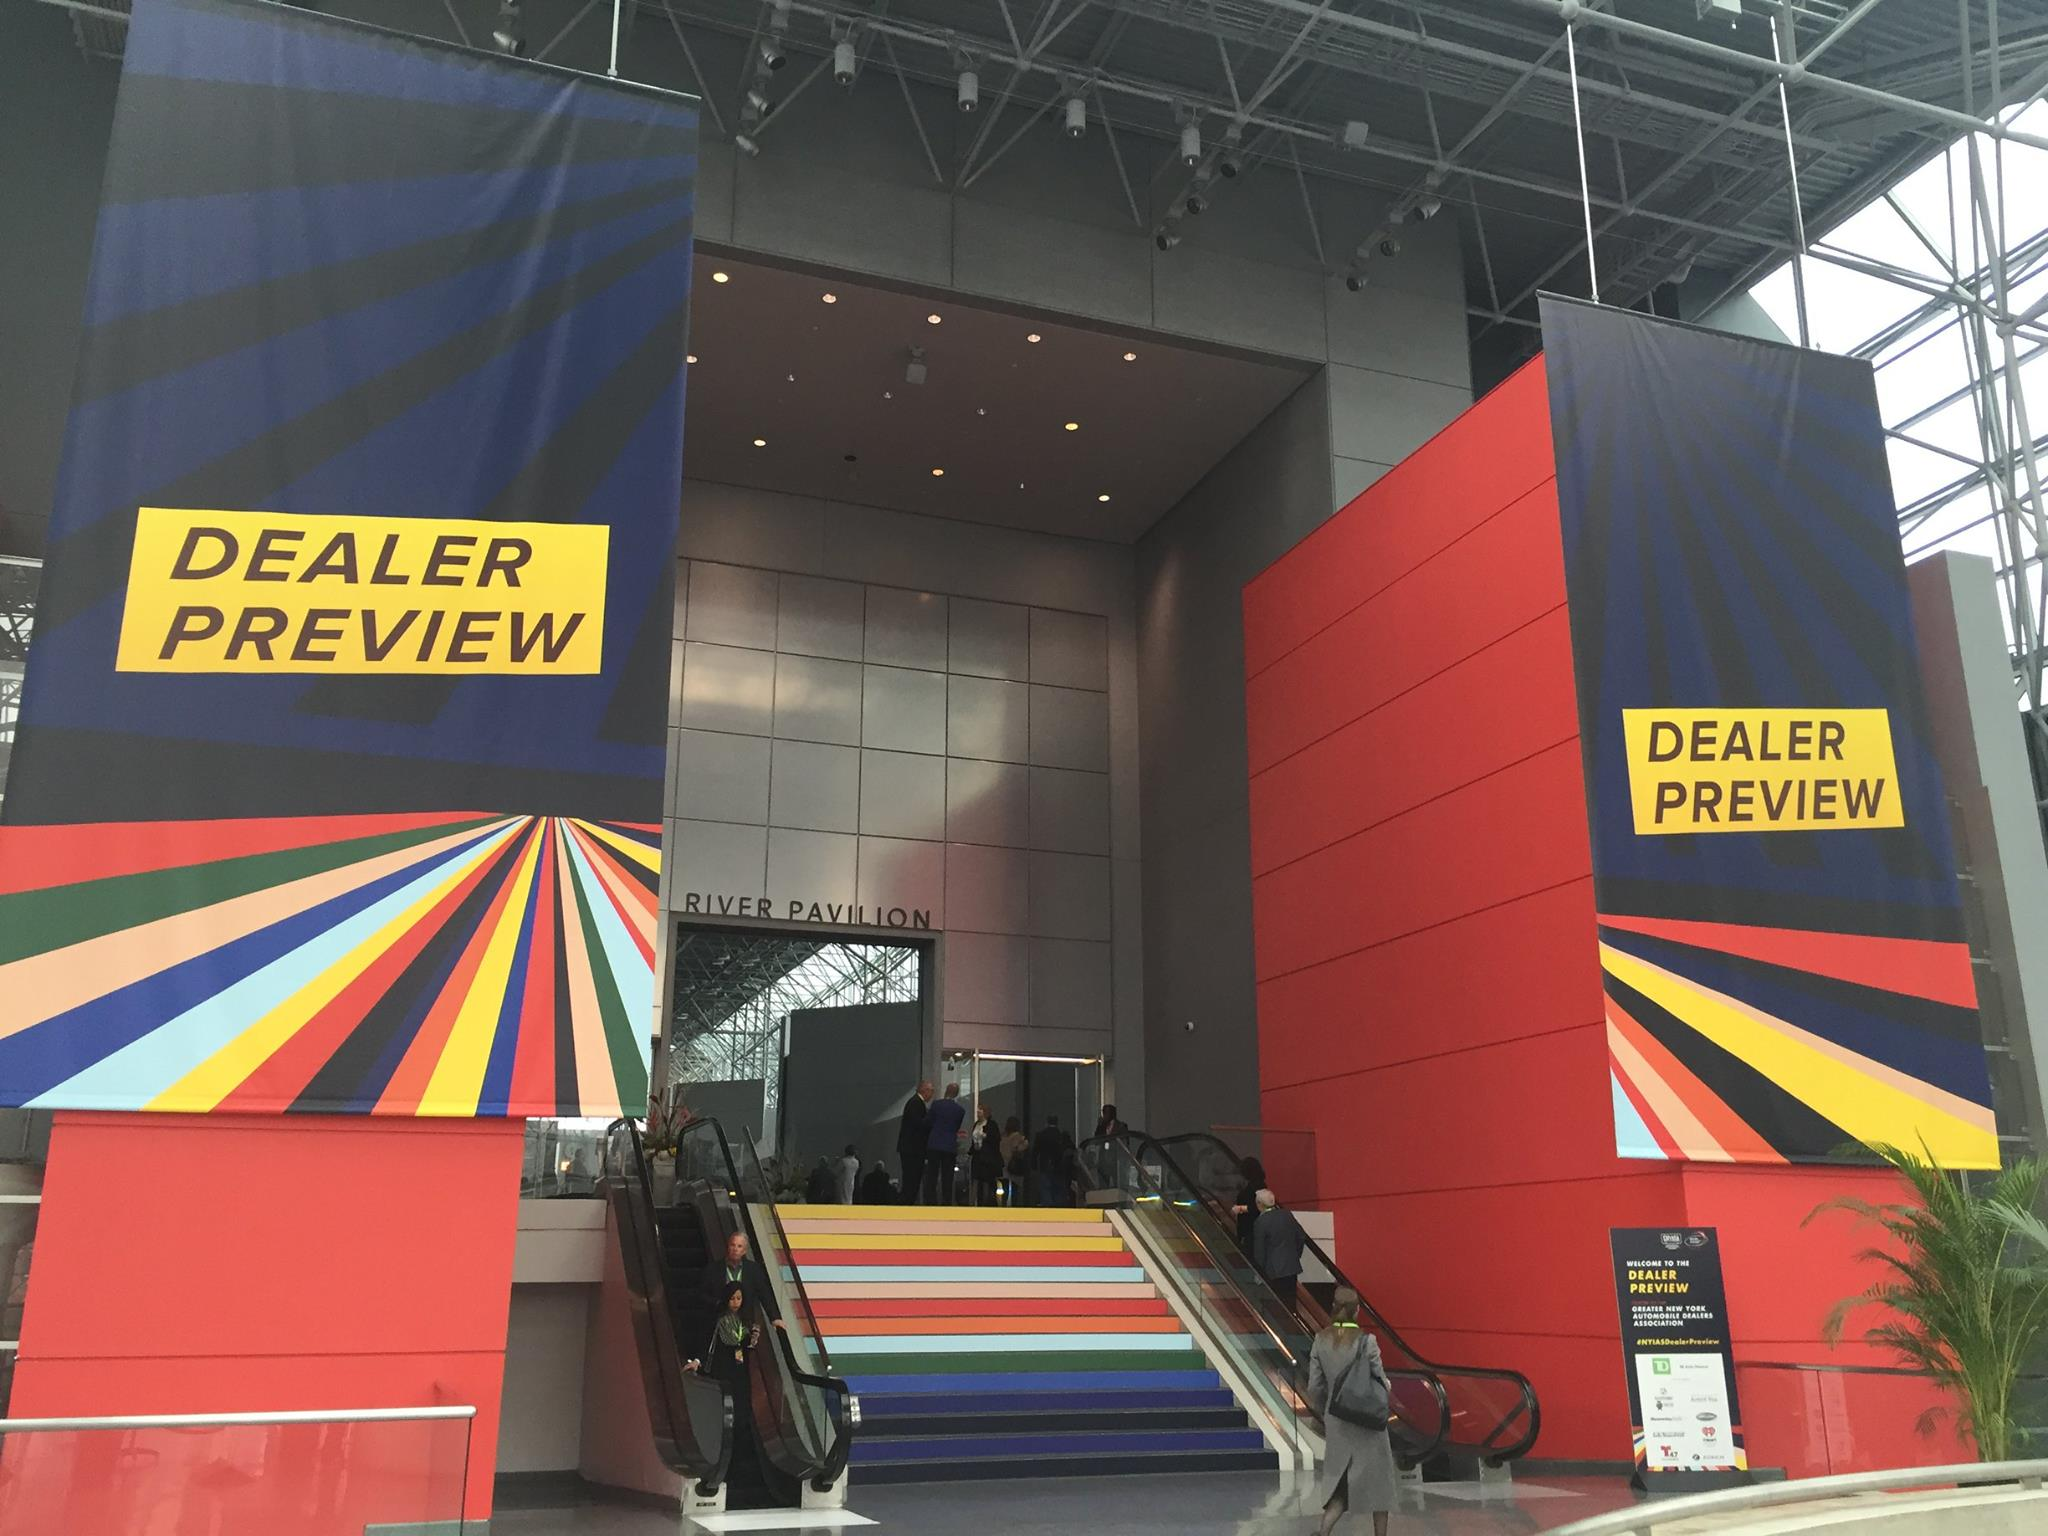 2016 New York International Auto Show. Projects included, Save the Date, Invitation, Large scale signage and decor.